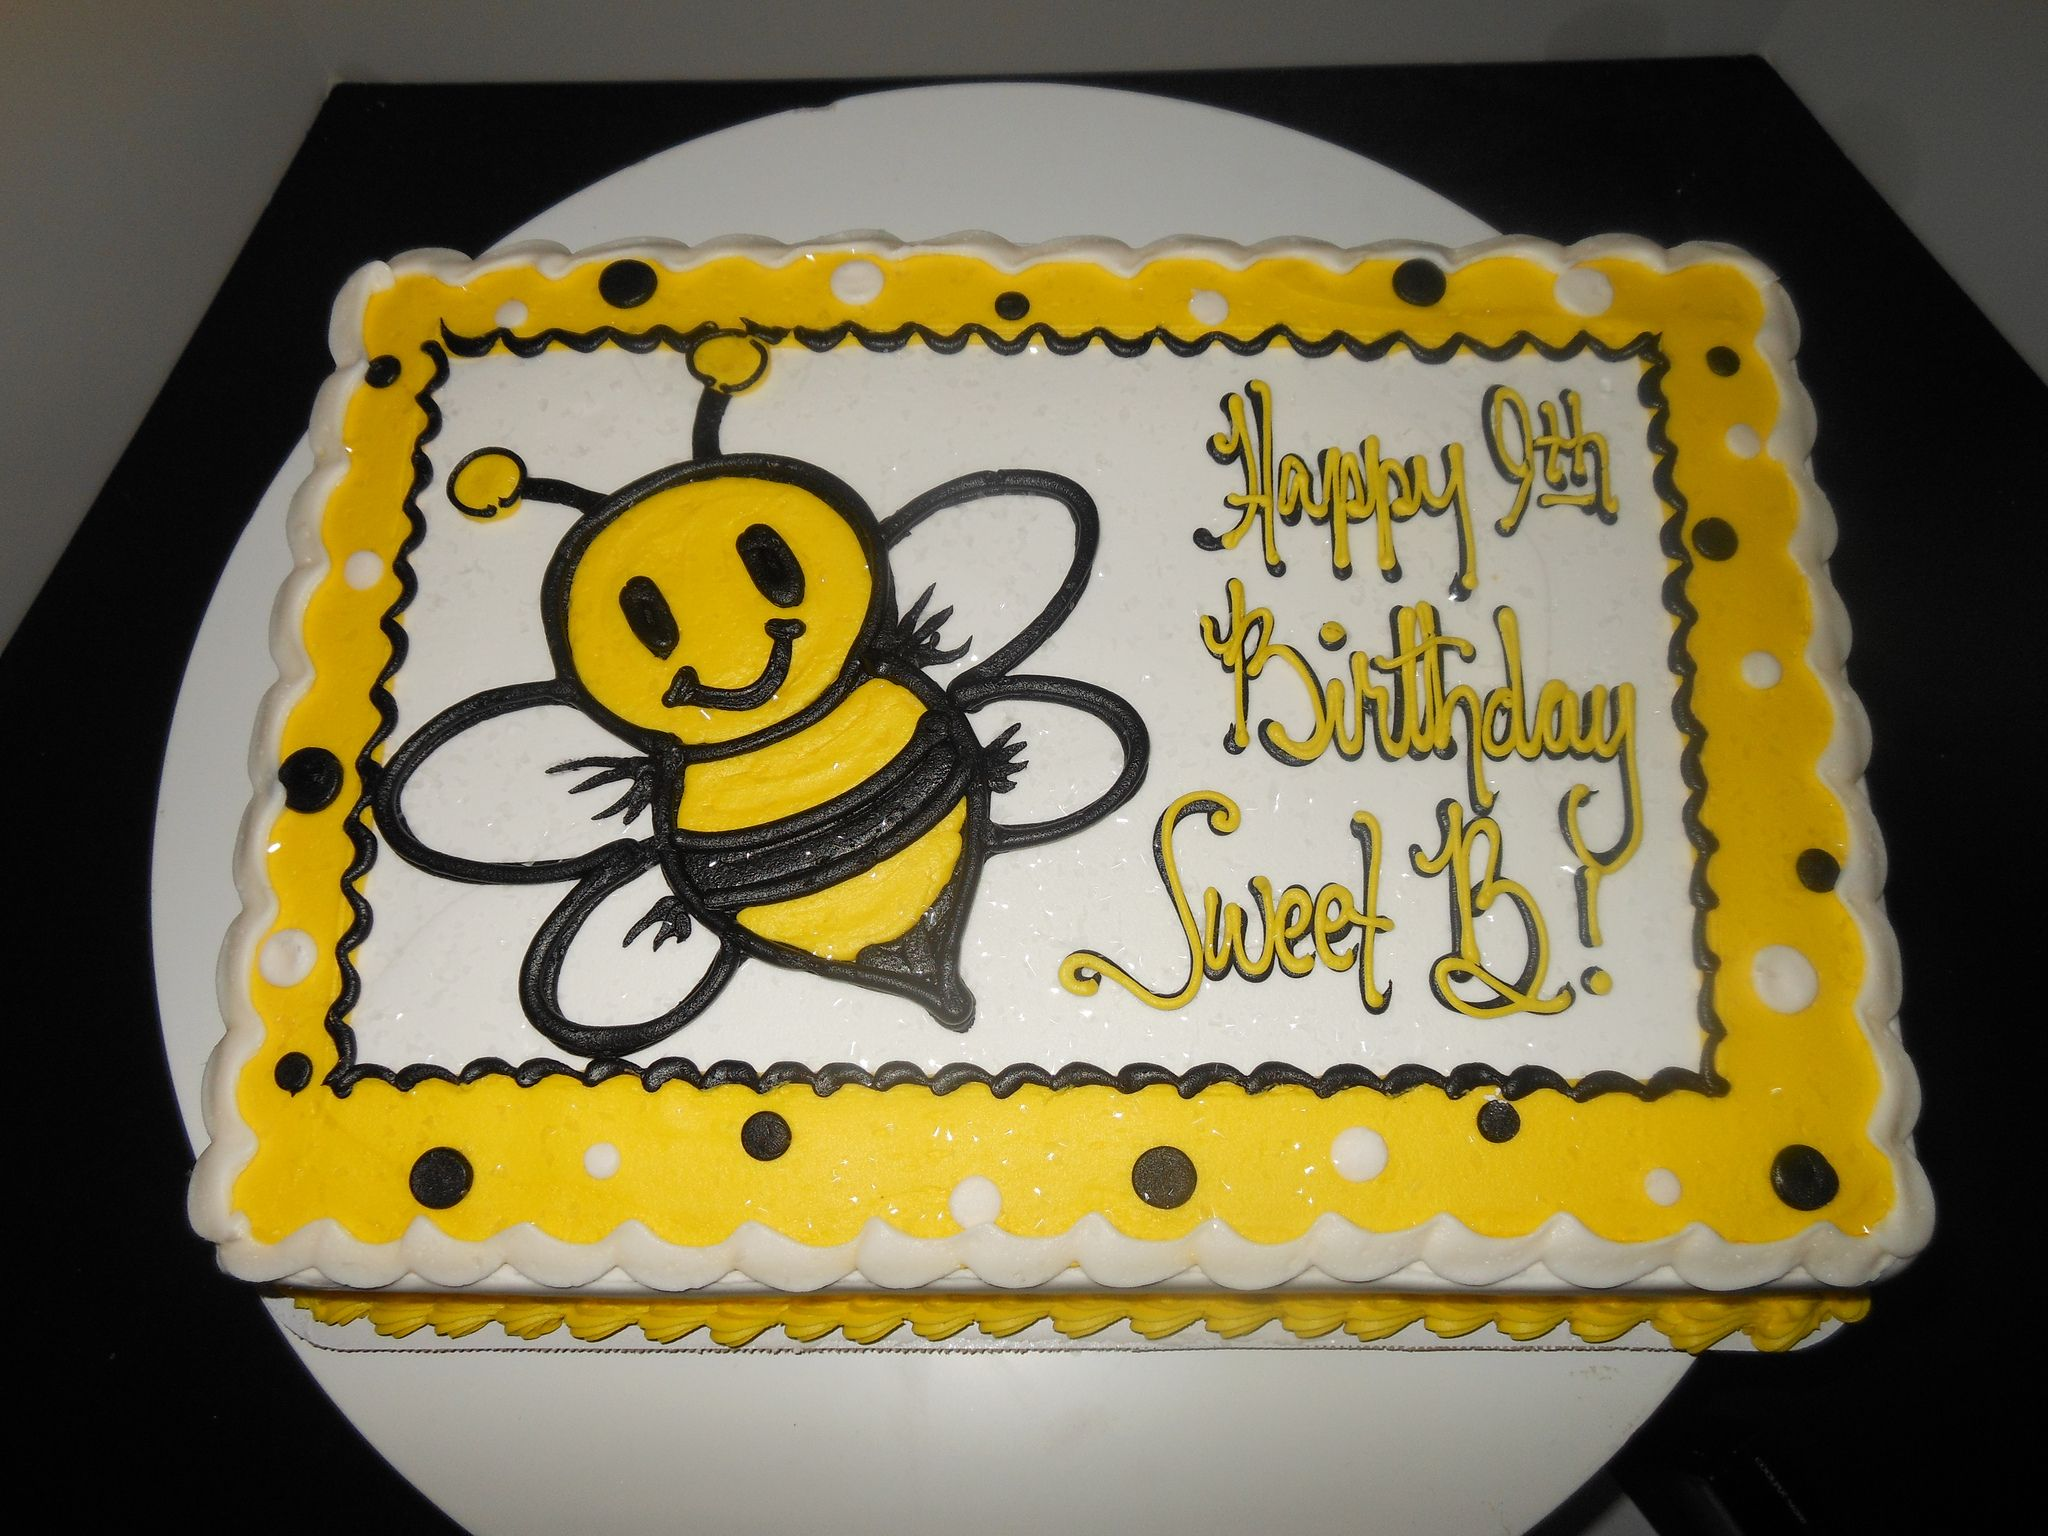 Https Flic Kr P D771mm Little Bee Cake Bumble Bee Cake Bee